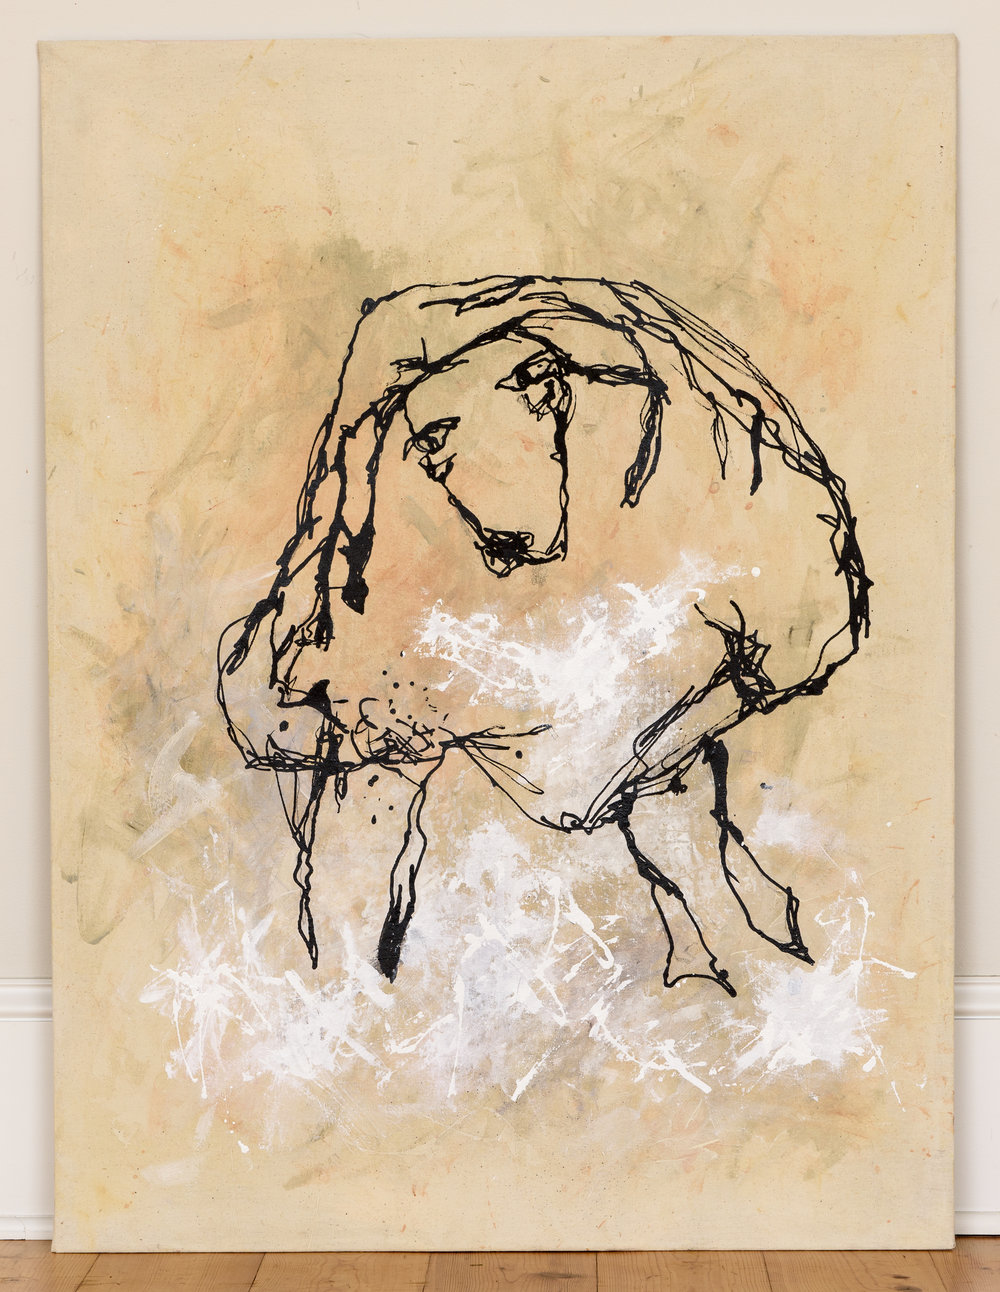 The Sheep, 2006